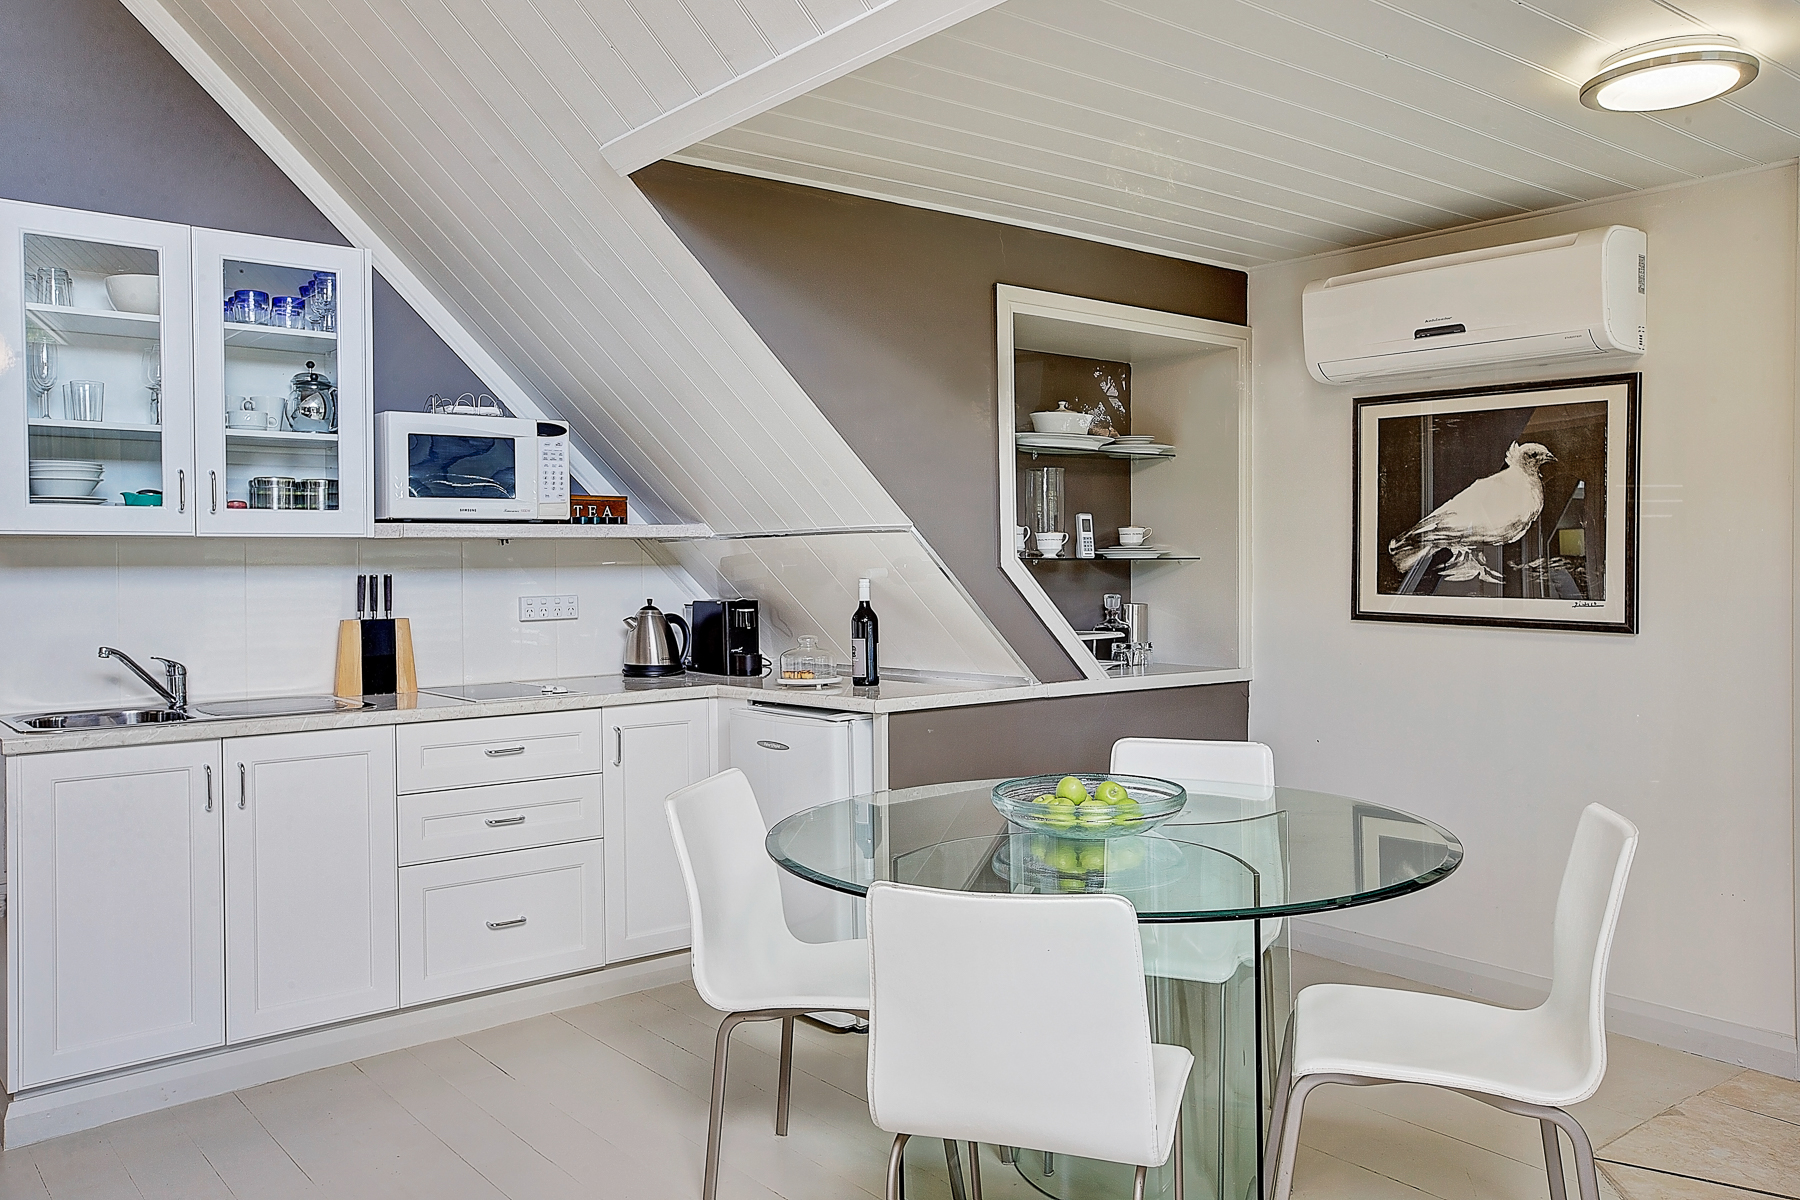 Loft Cottage - Self-Contained